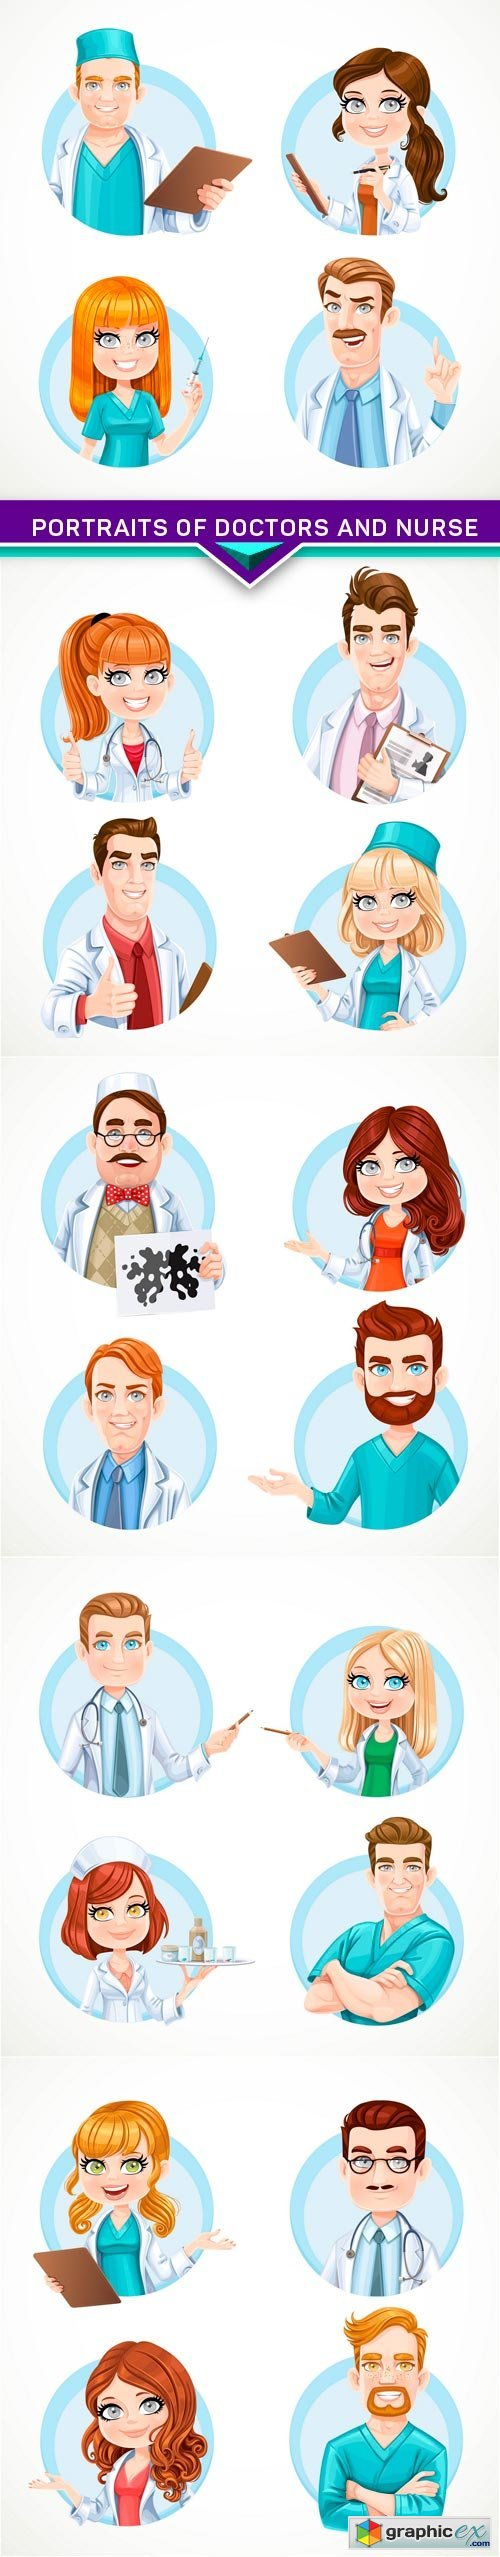 Portraits of doctors and nurse 5X EPS